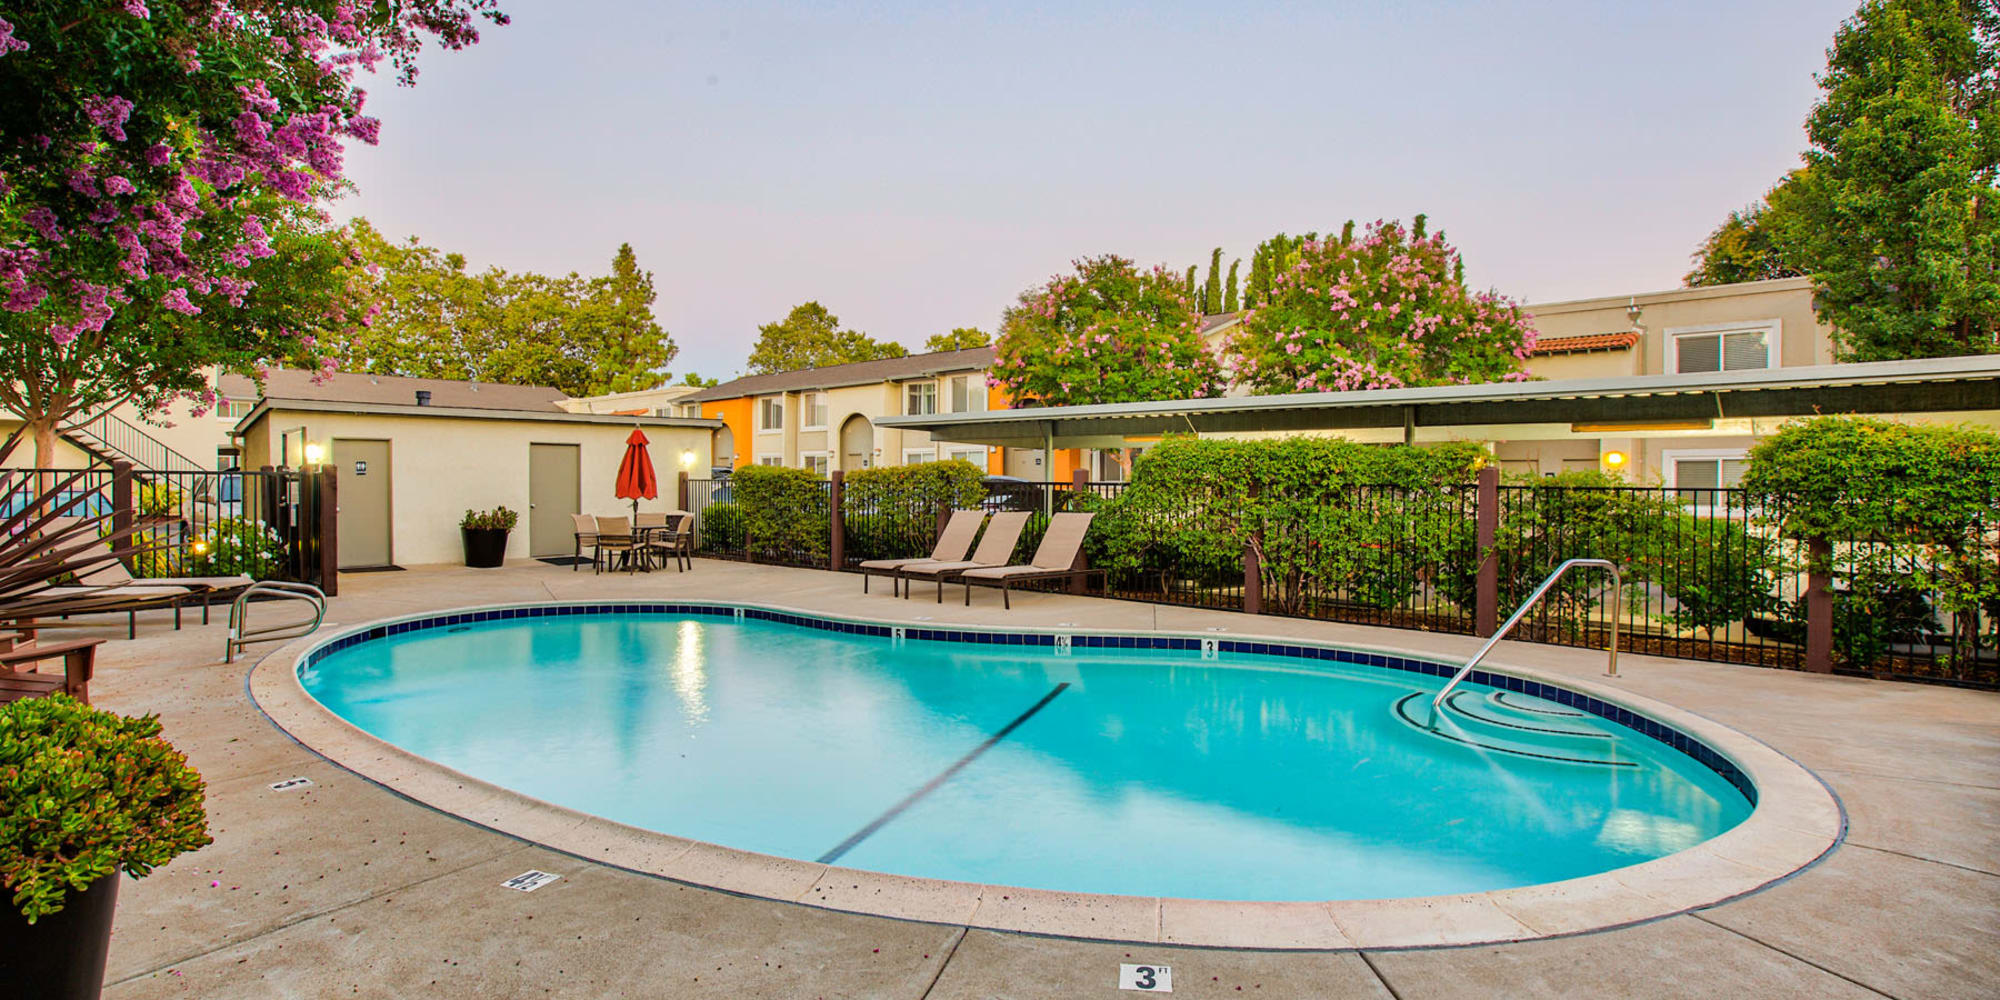 Gorgeous morning at the swimming pool area at Pleasanton Place Apartment Homes in Pleasanton, California